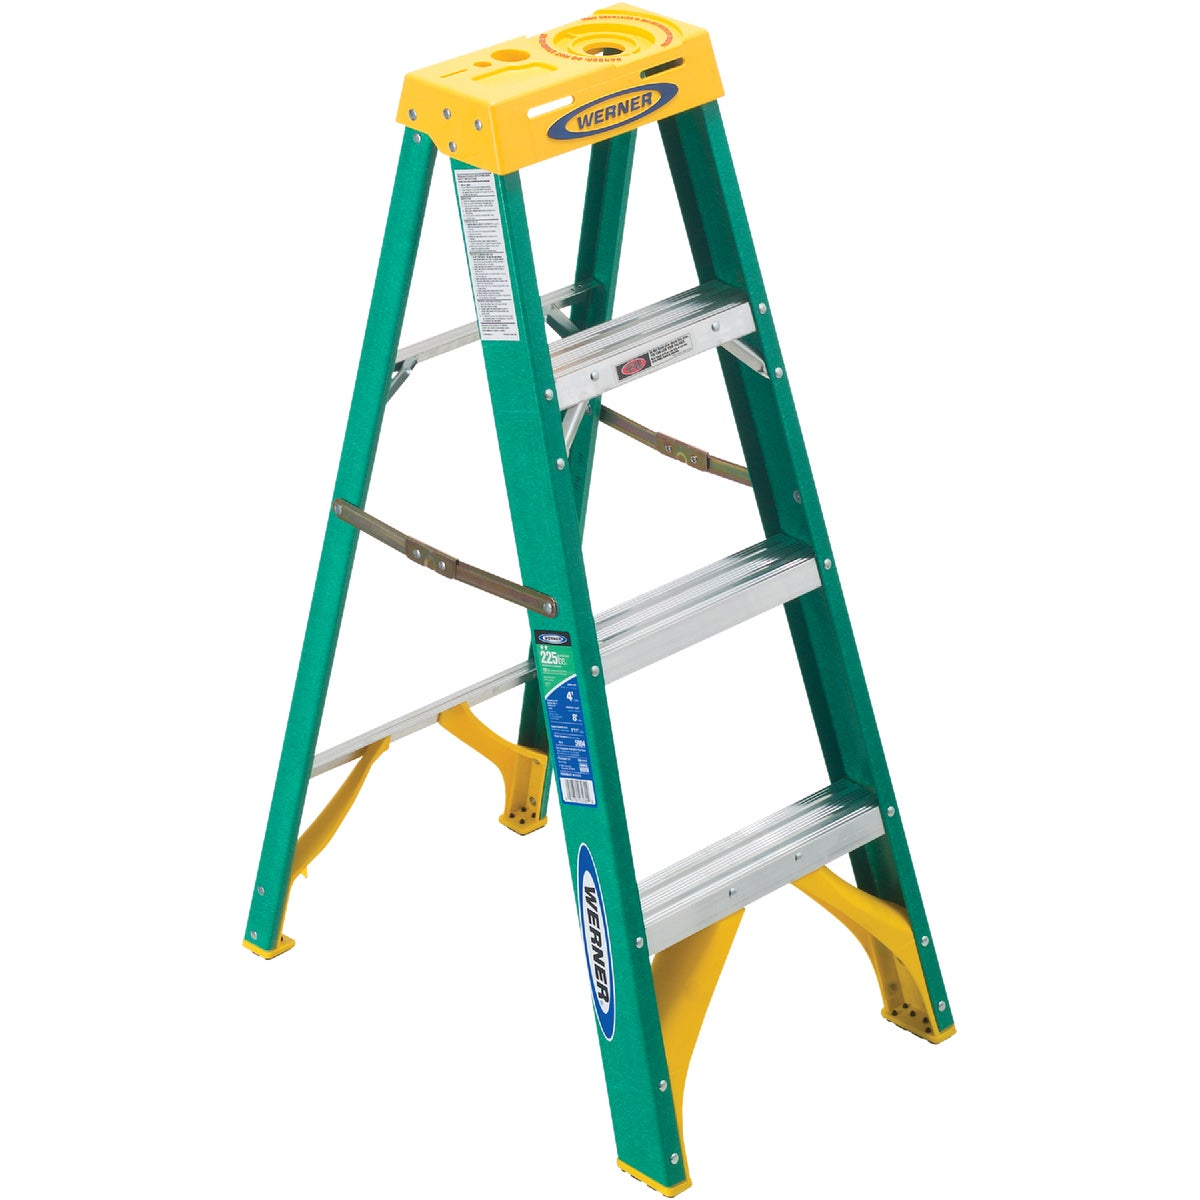 T-2 4' FBGL STEPLADDER - 5904 by Werner Co